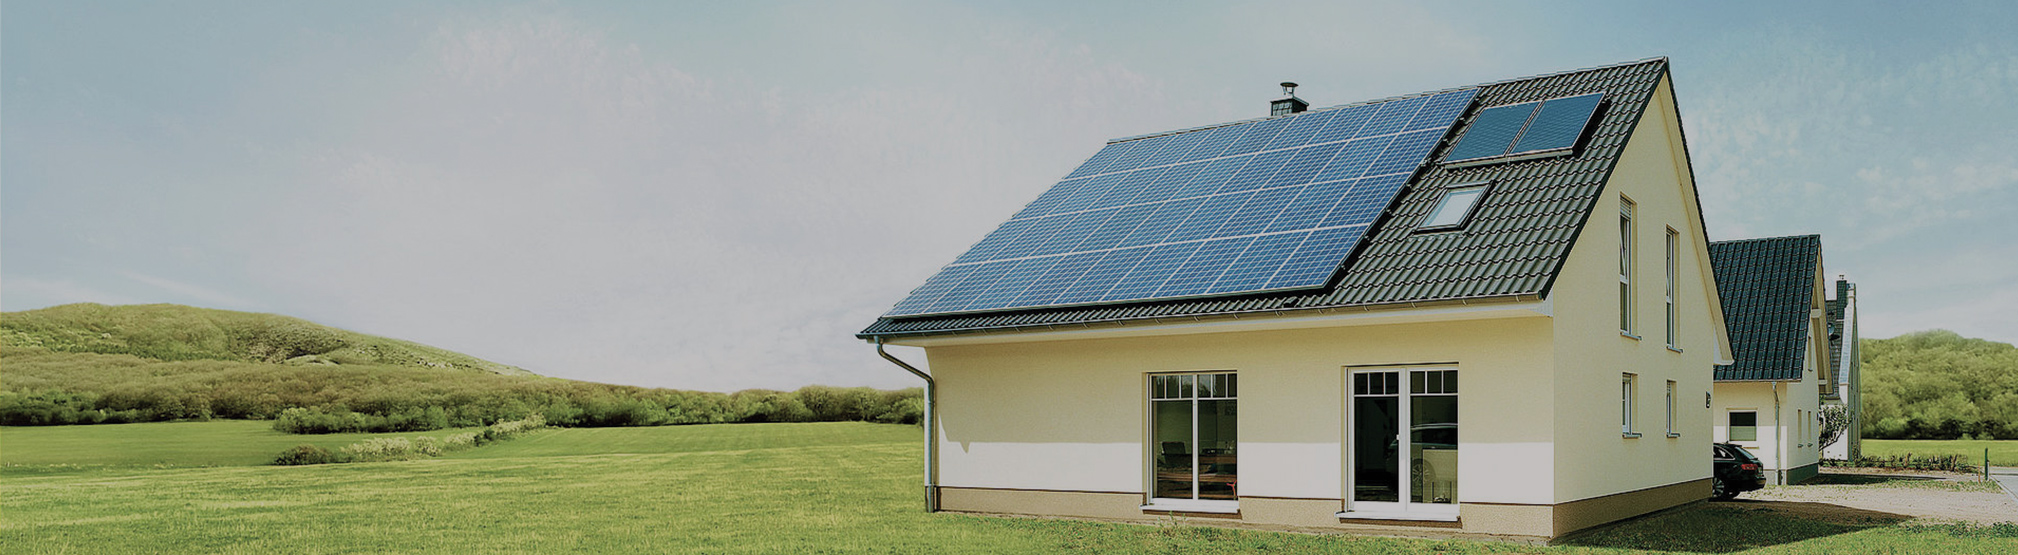 Solar Powered Home Green Solar Technologies - Solar Power solar panels renewables sustainability